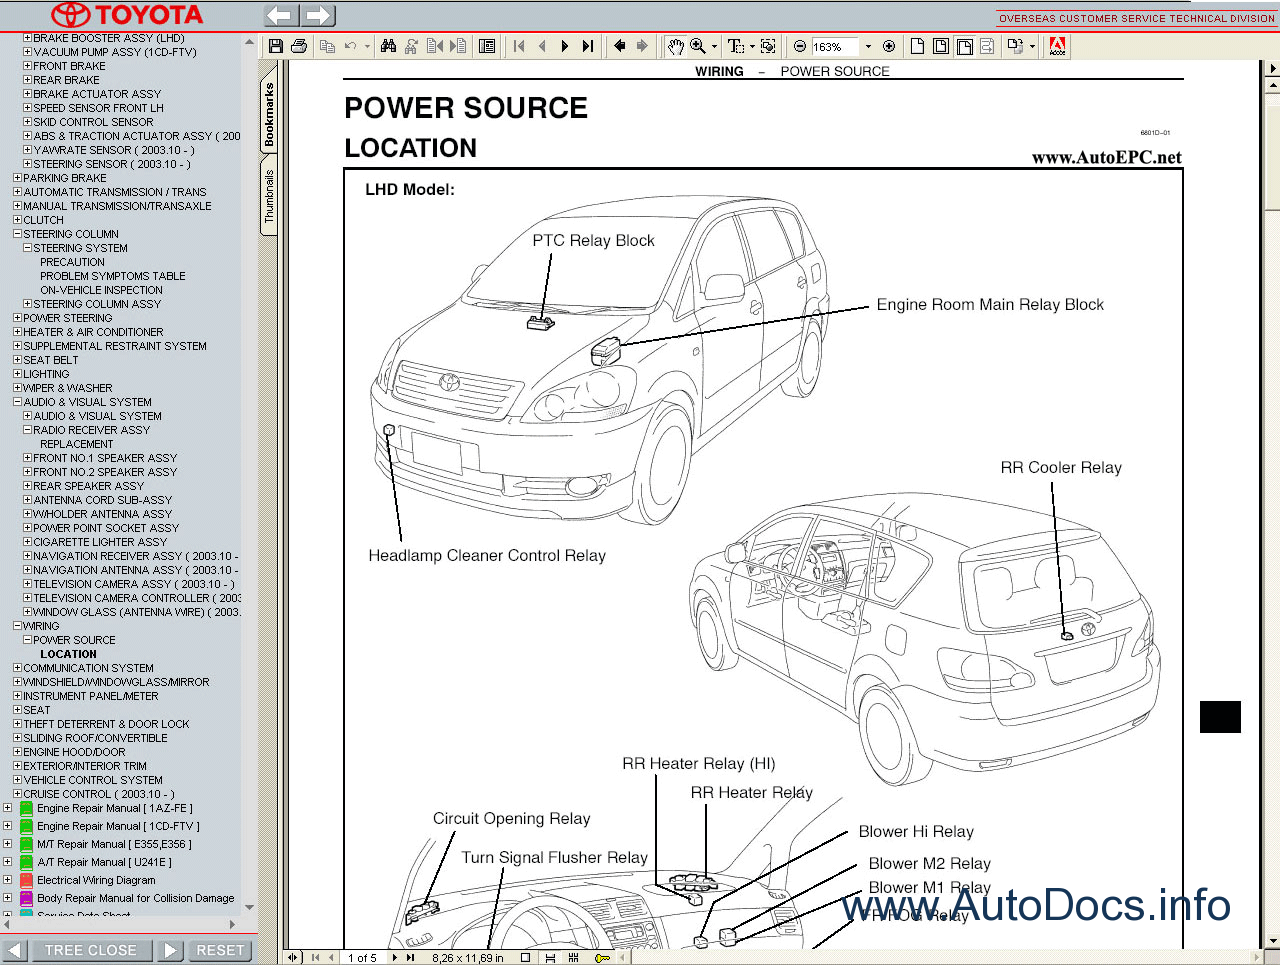 hight resolution of toyota electrical wiring diagram also yaris 2003 toyota 2005 acura tsx engine diagram 2004 acura tsx engine diagram